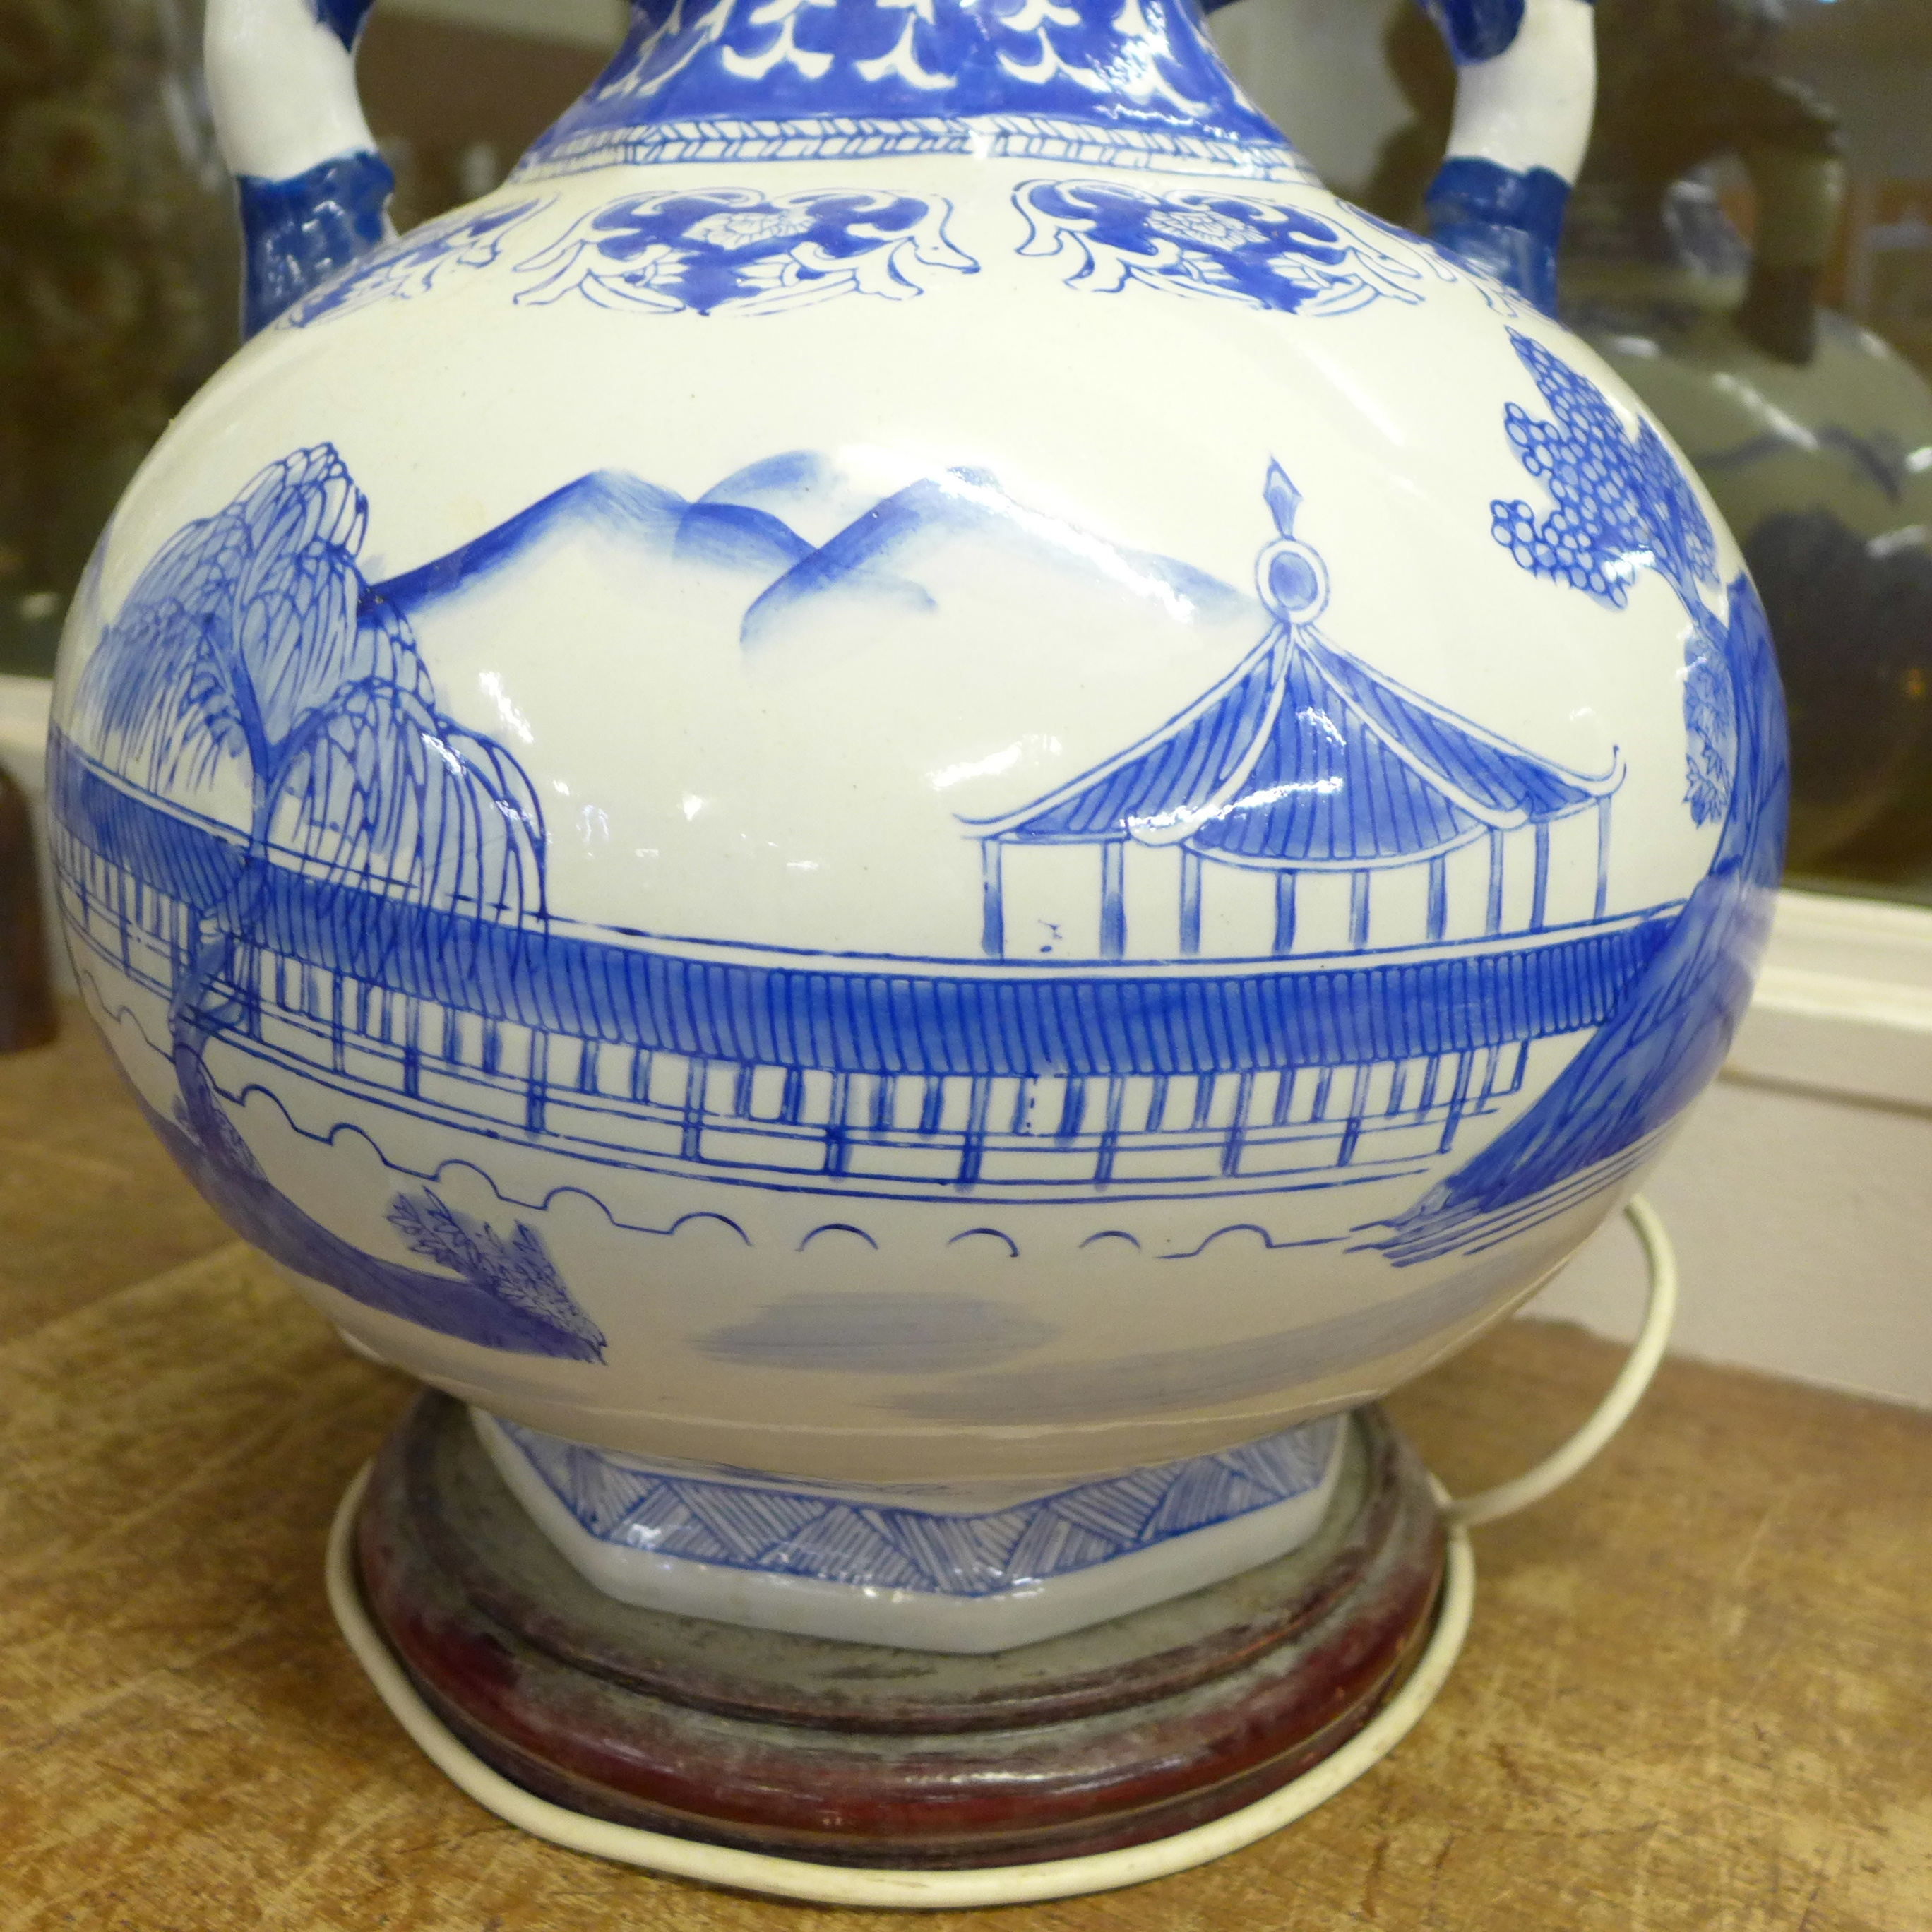 A large Chinese blue and white table lamp, 40cm - Image 4 of 4